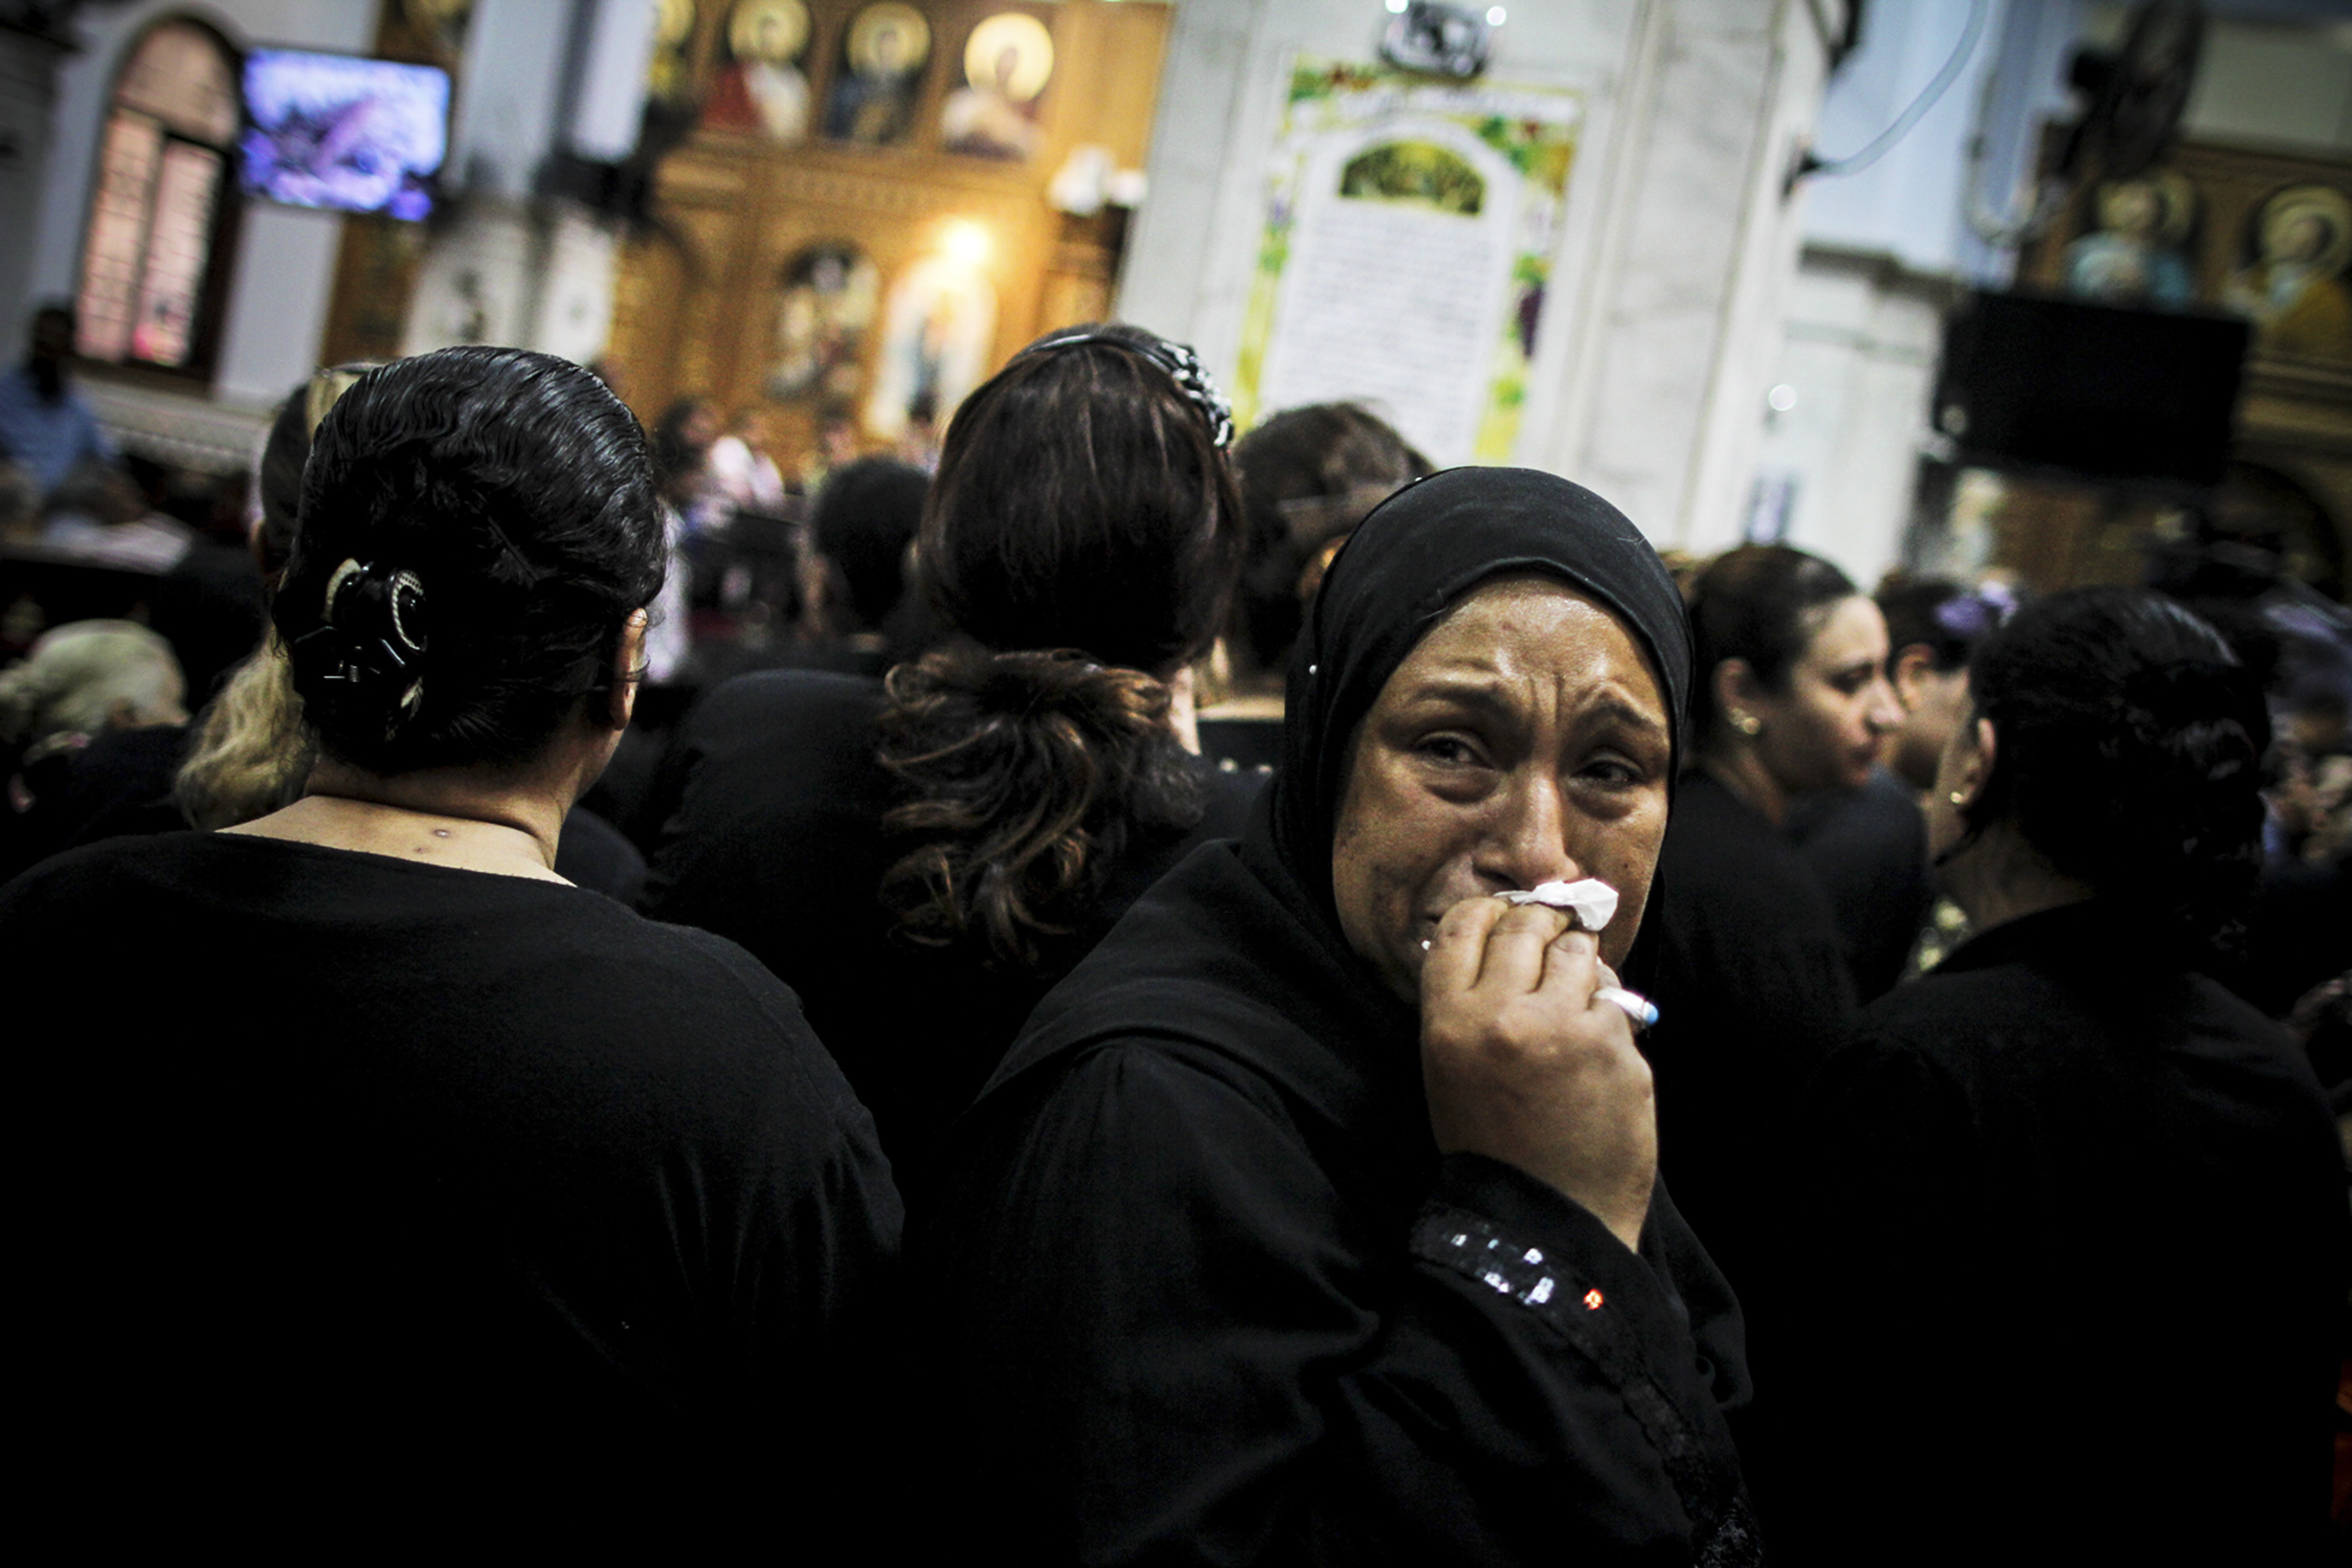 Escalating fear A mourner at the funeral of four Egyptian Christians killed in a drive-by shooting